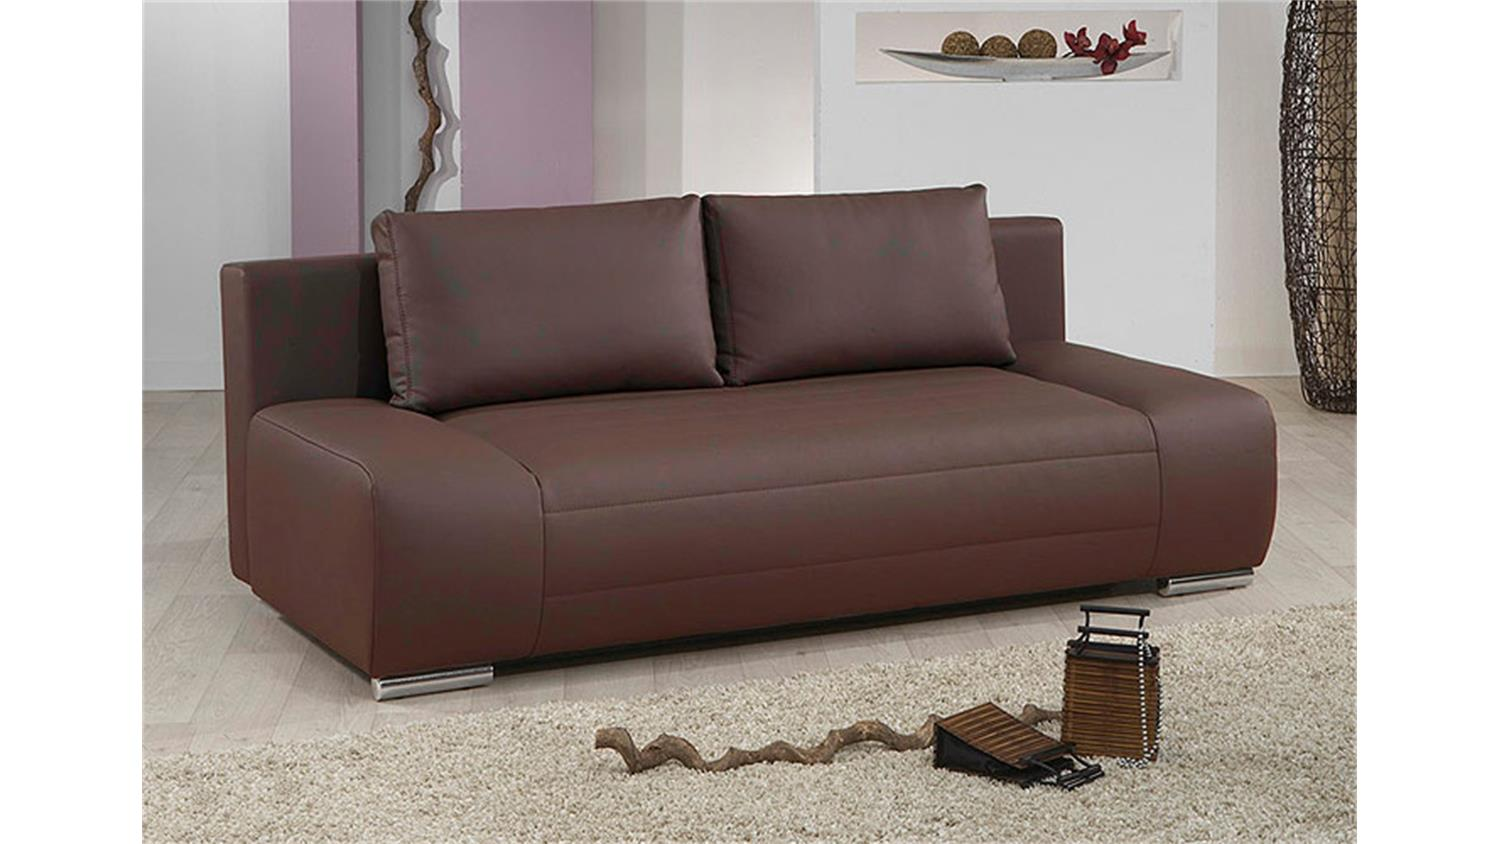 rattan sofa mit bettfunktion rattan sofa mit bettfunktion. Black Bedroom Furniture Sets. Home Design Ideas